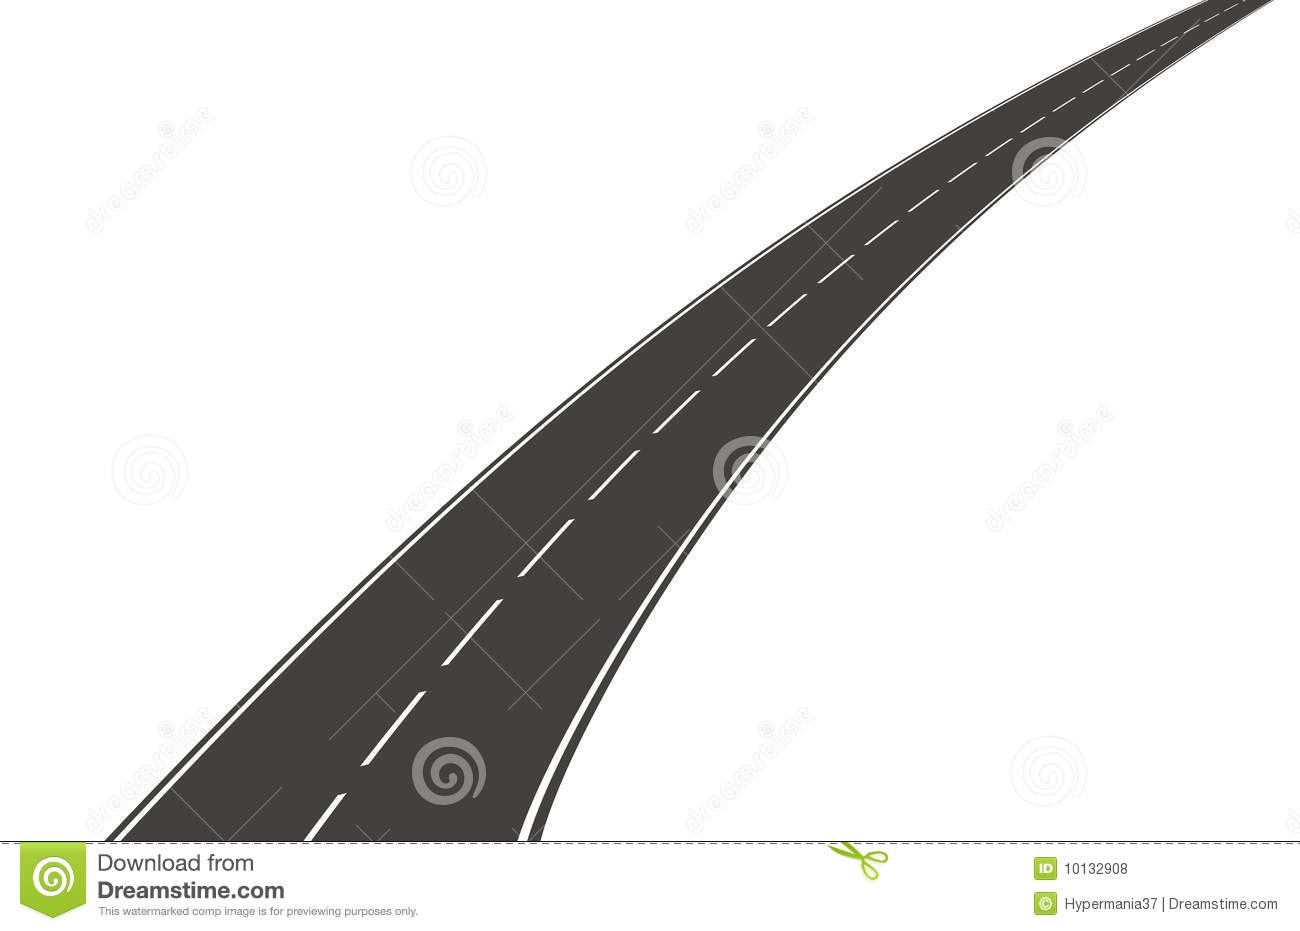 Pathway clipart curved street Clipart Curved collections Clipart Curved